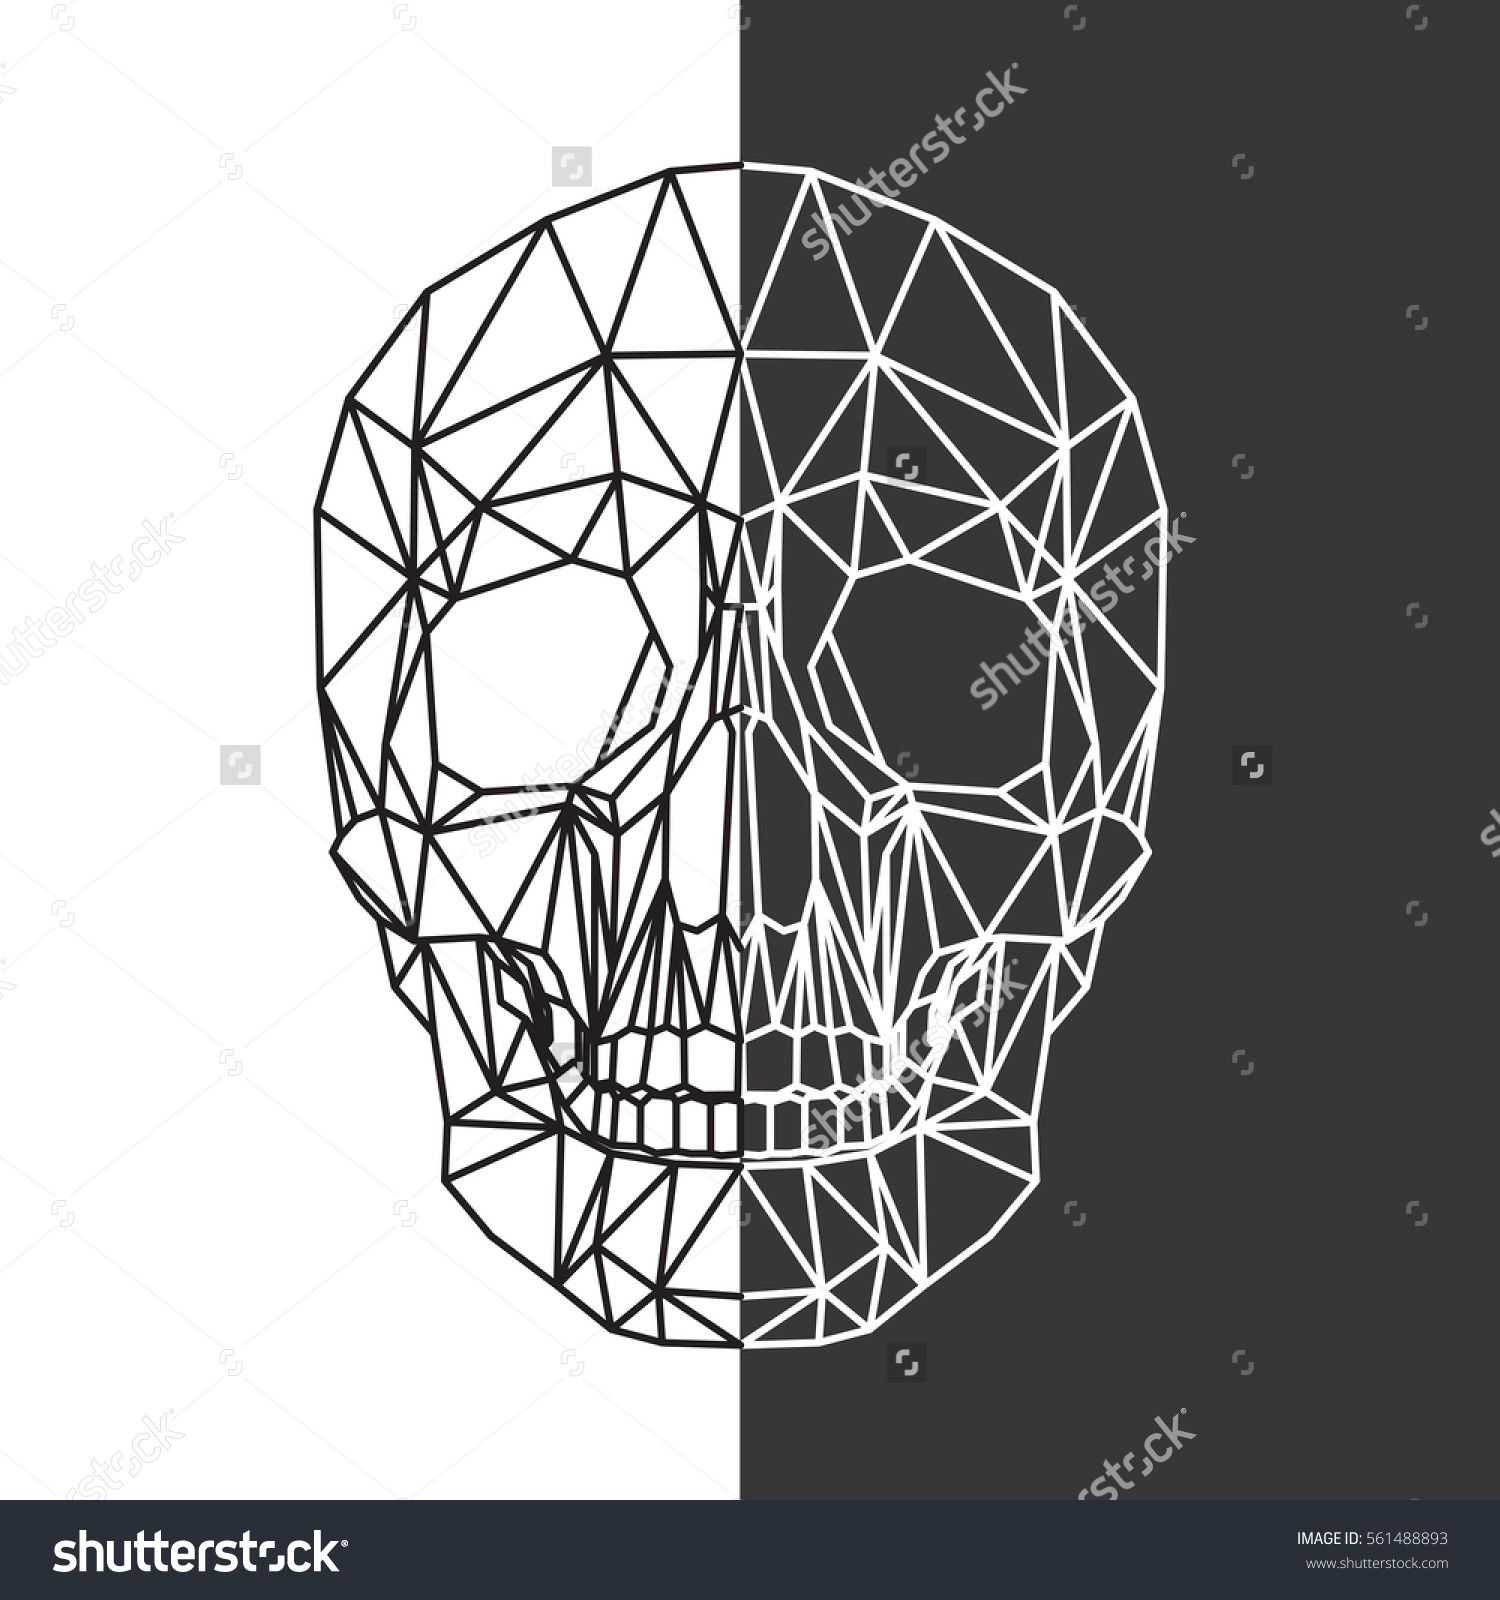 Annabella 67 Art Line Design : Human skull cranium abstract polygonal lines design on